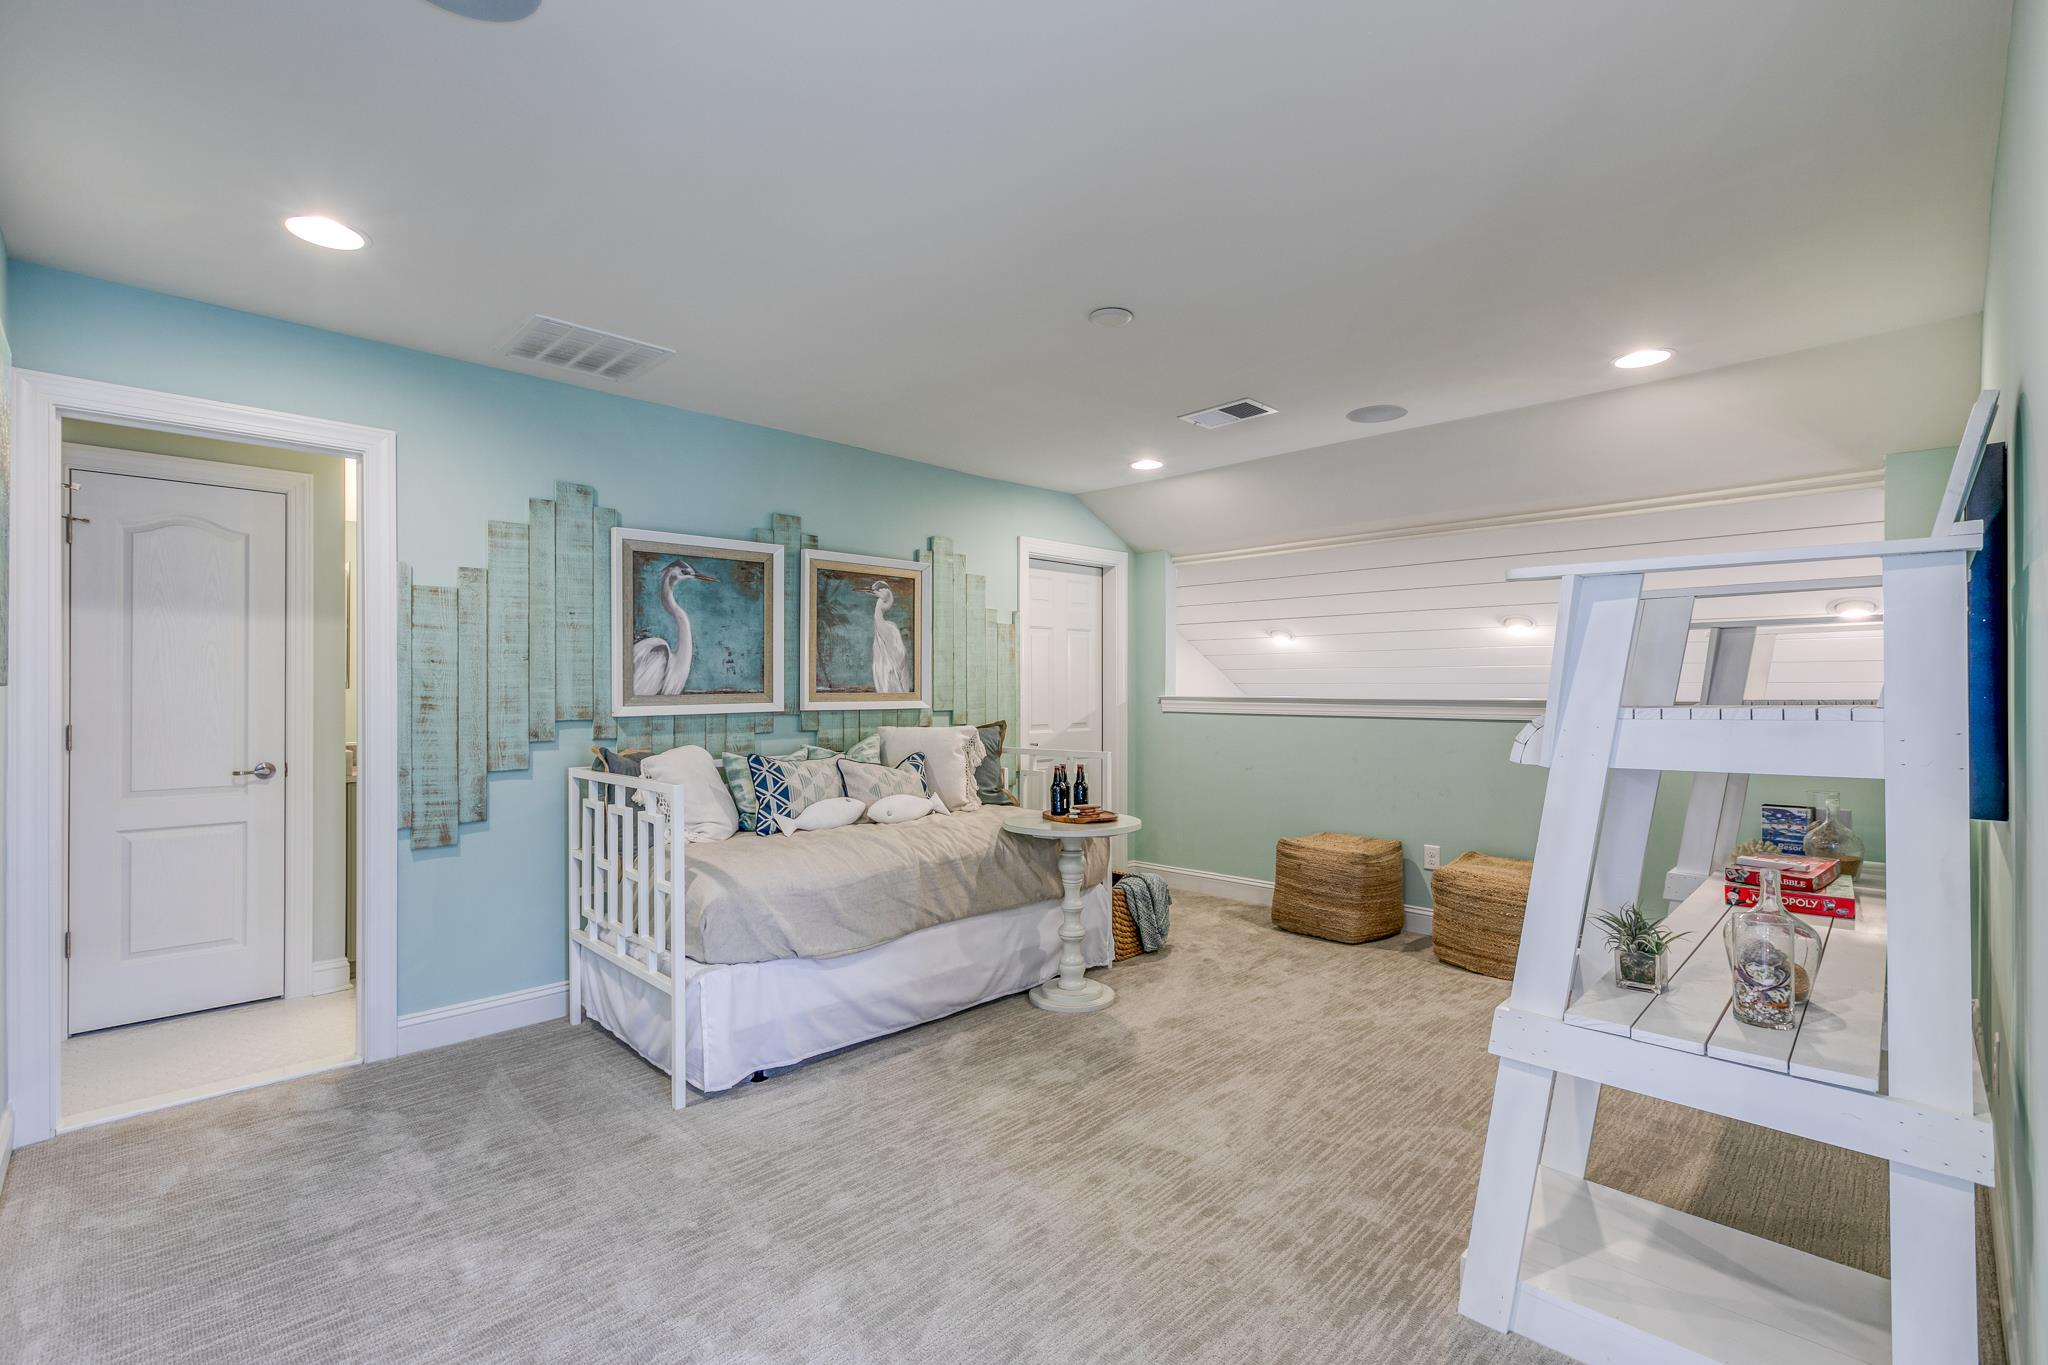 Bedroom featured in The Dalton By McKee Builders in Dover, DE